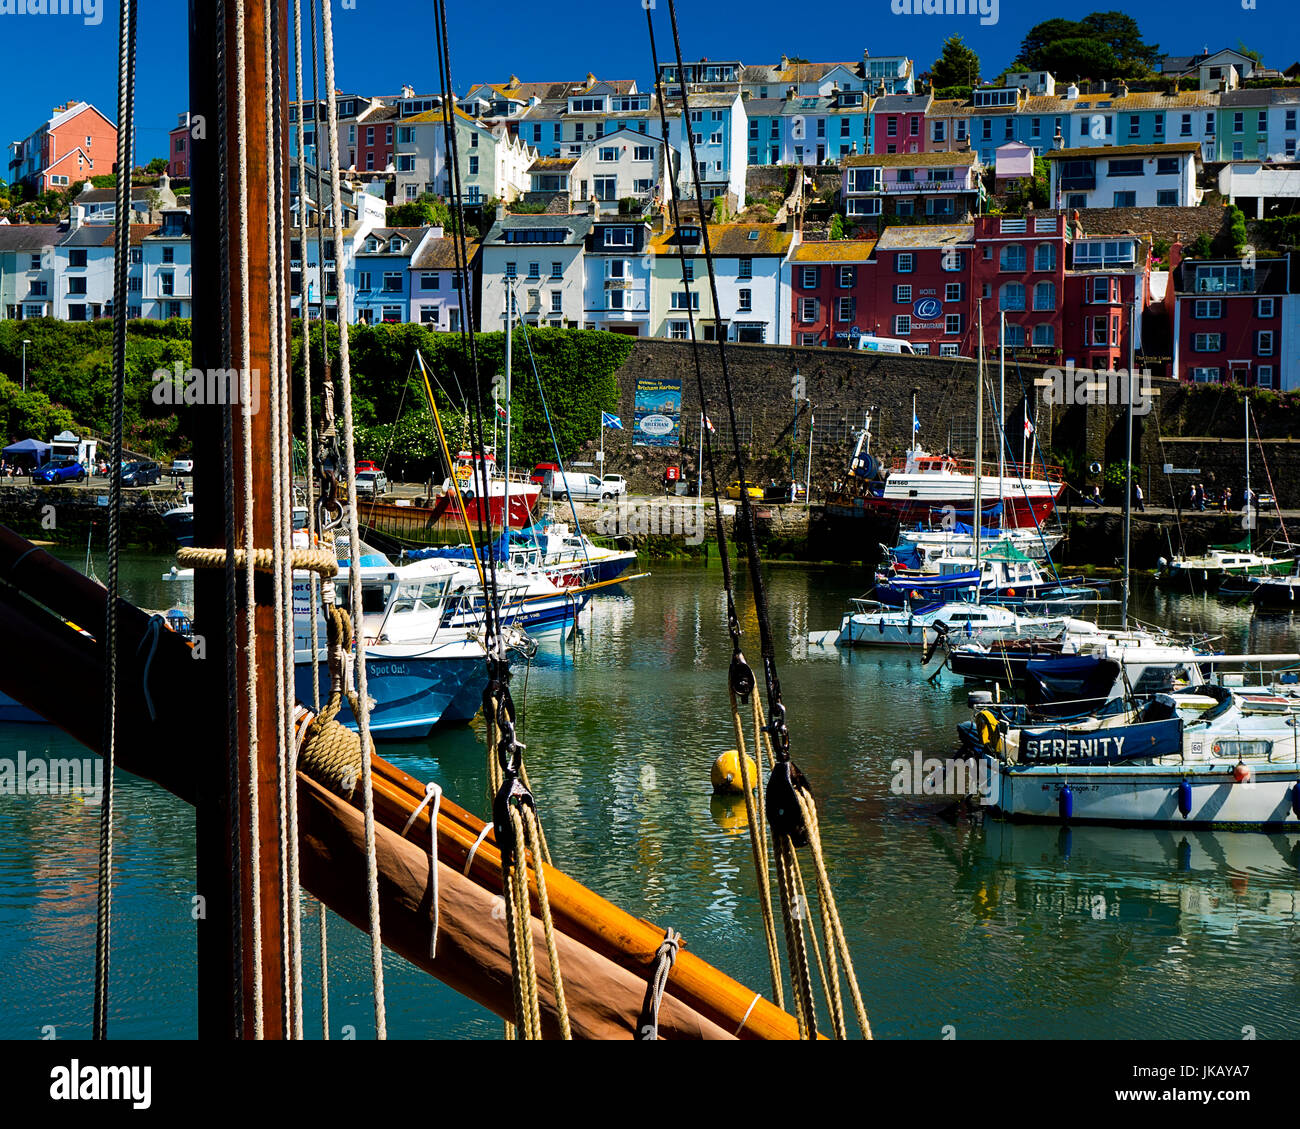 GB - DEVON: Brixham Harbour View Immagini Stock